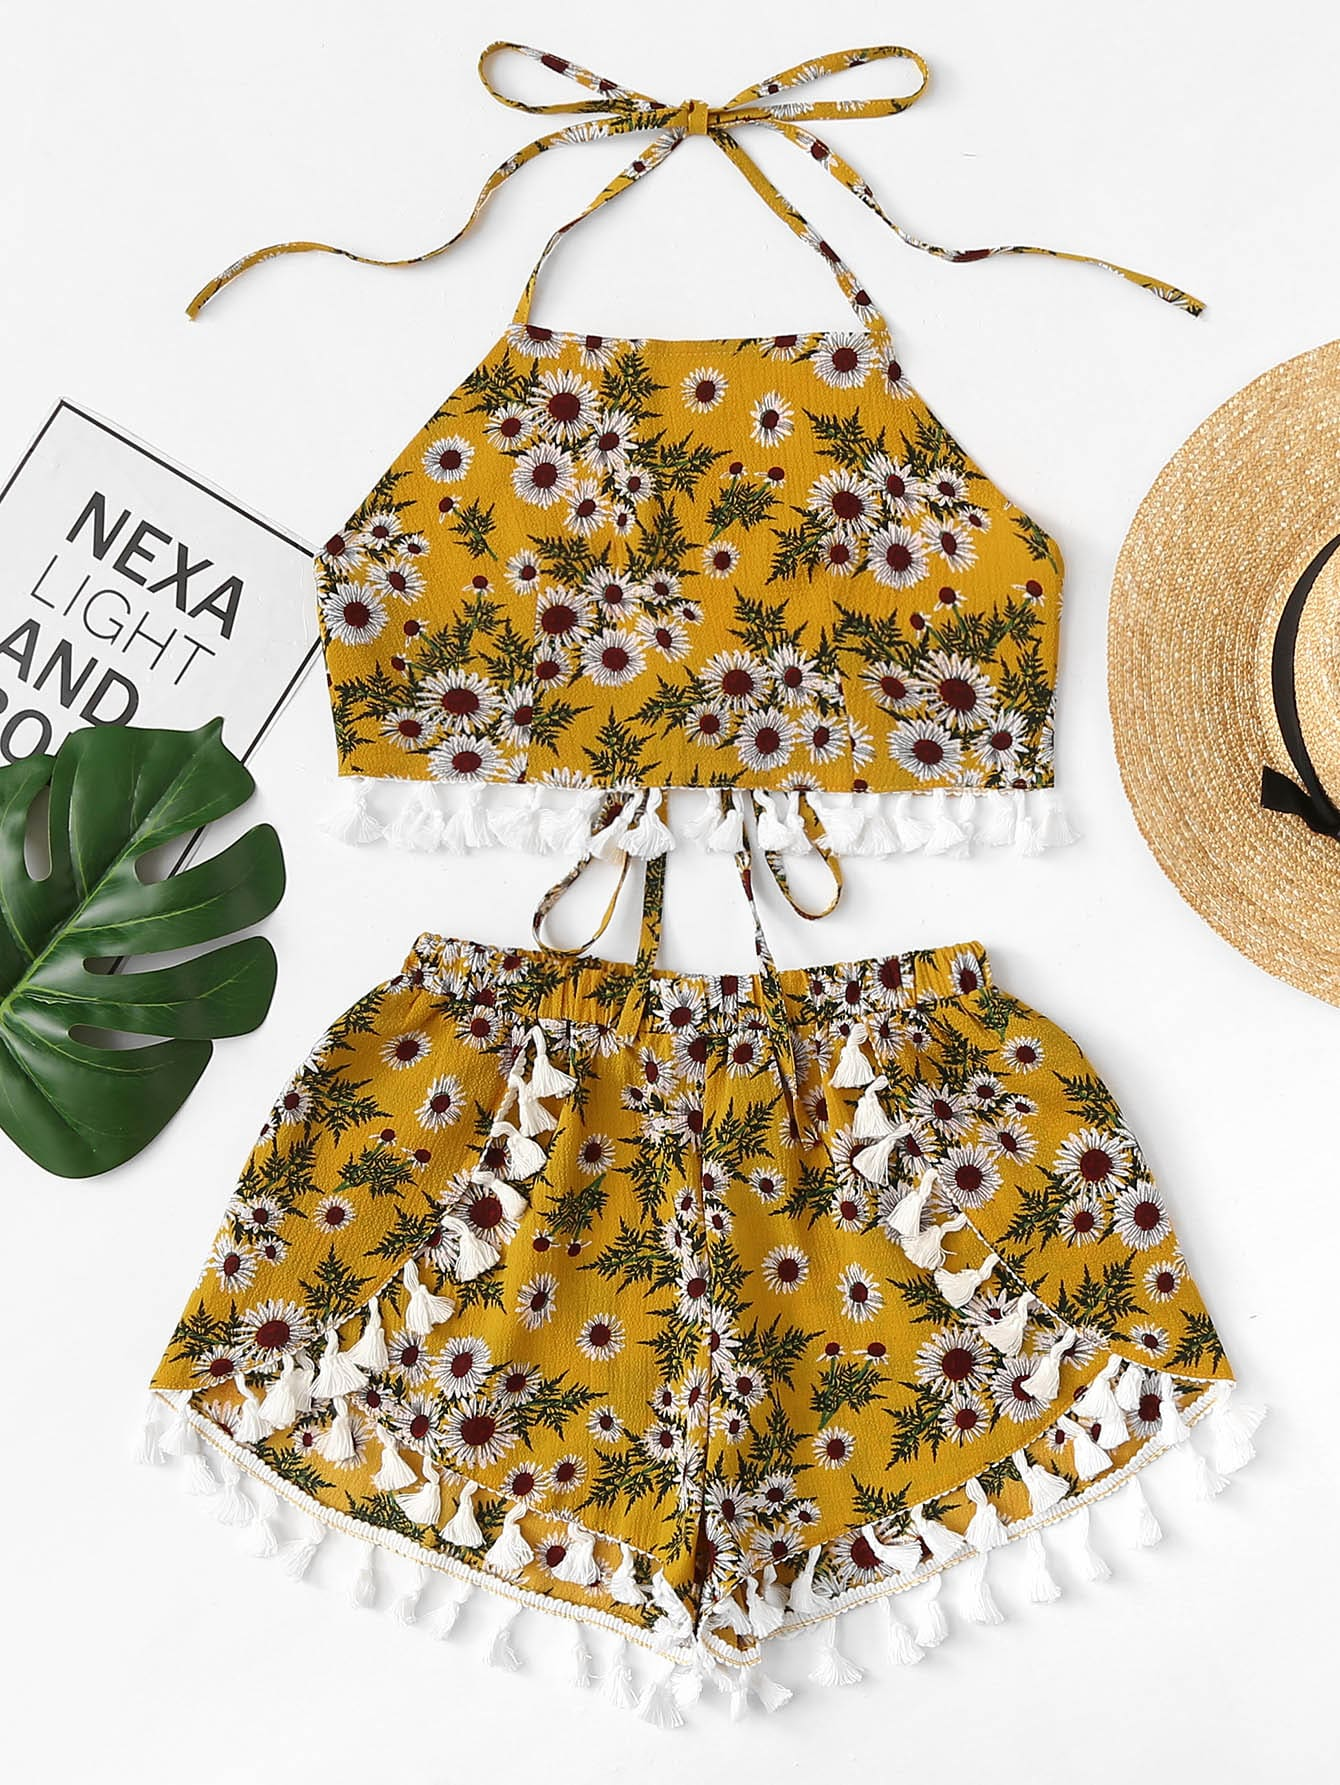 Fringe Trim Floral Print Halter Top With Shorts